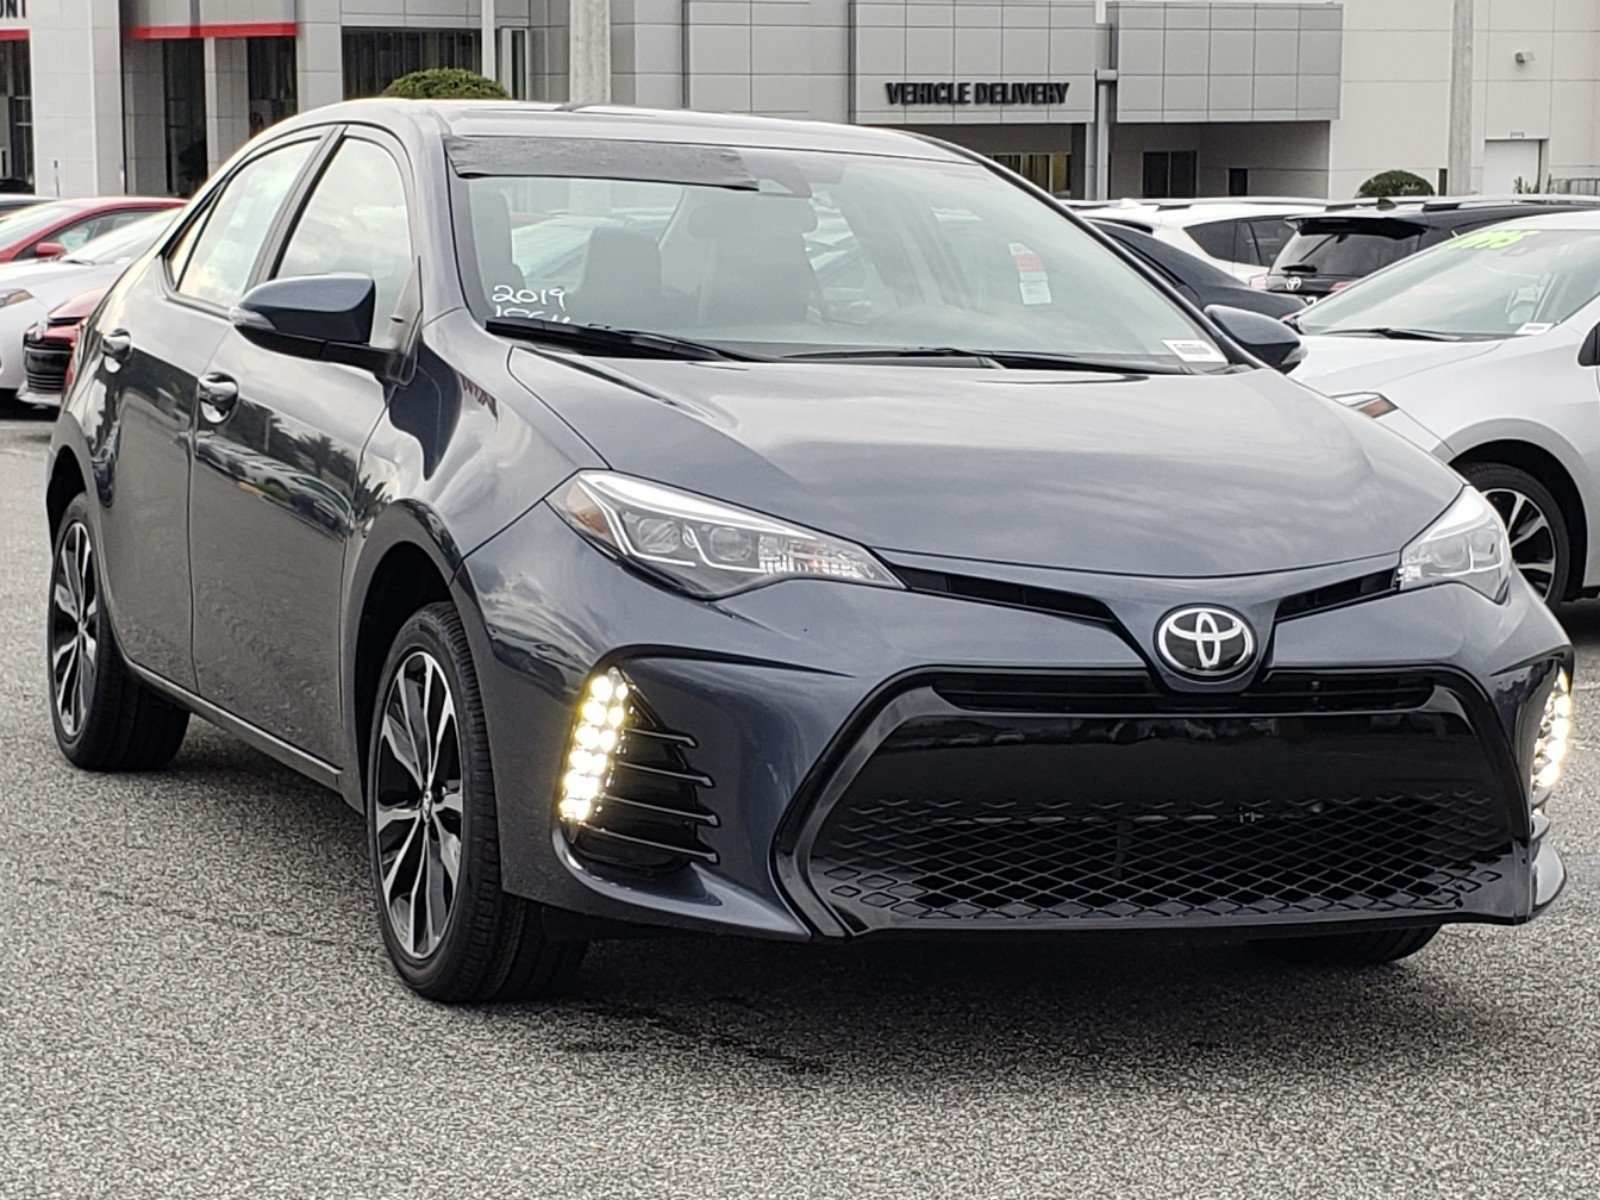 31 Best Review New Sedan Toyota 2019 Overview And Price History for New Sedan Toyota 2019 Overview And Price